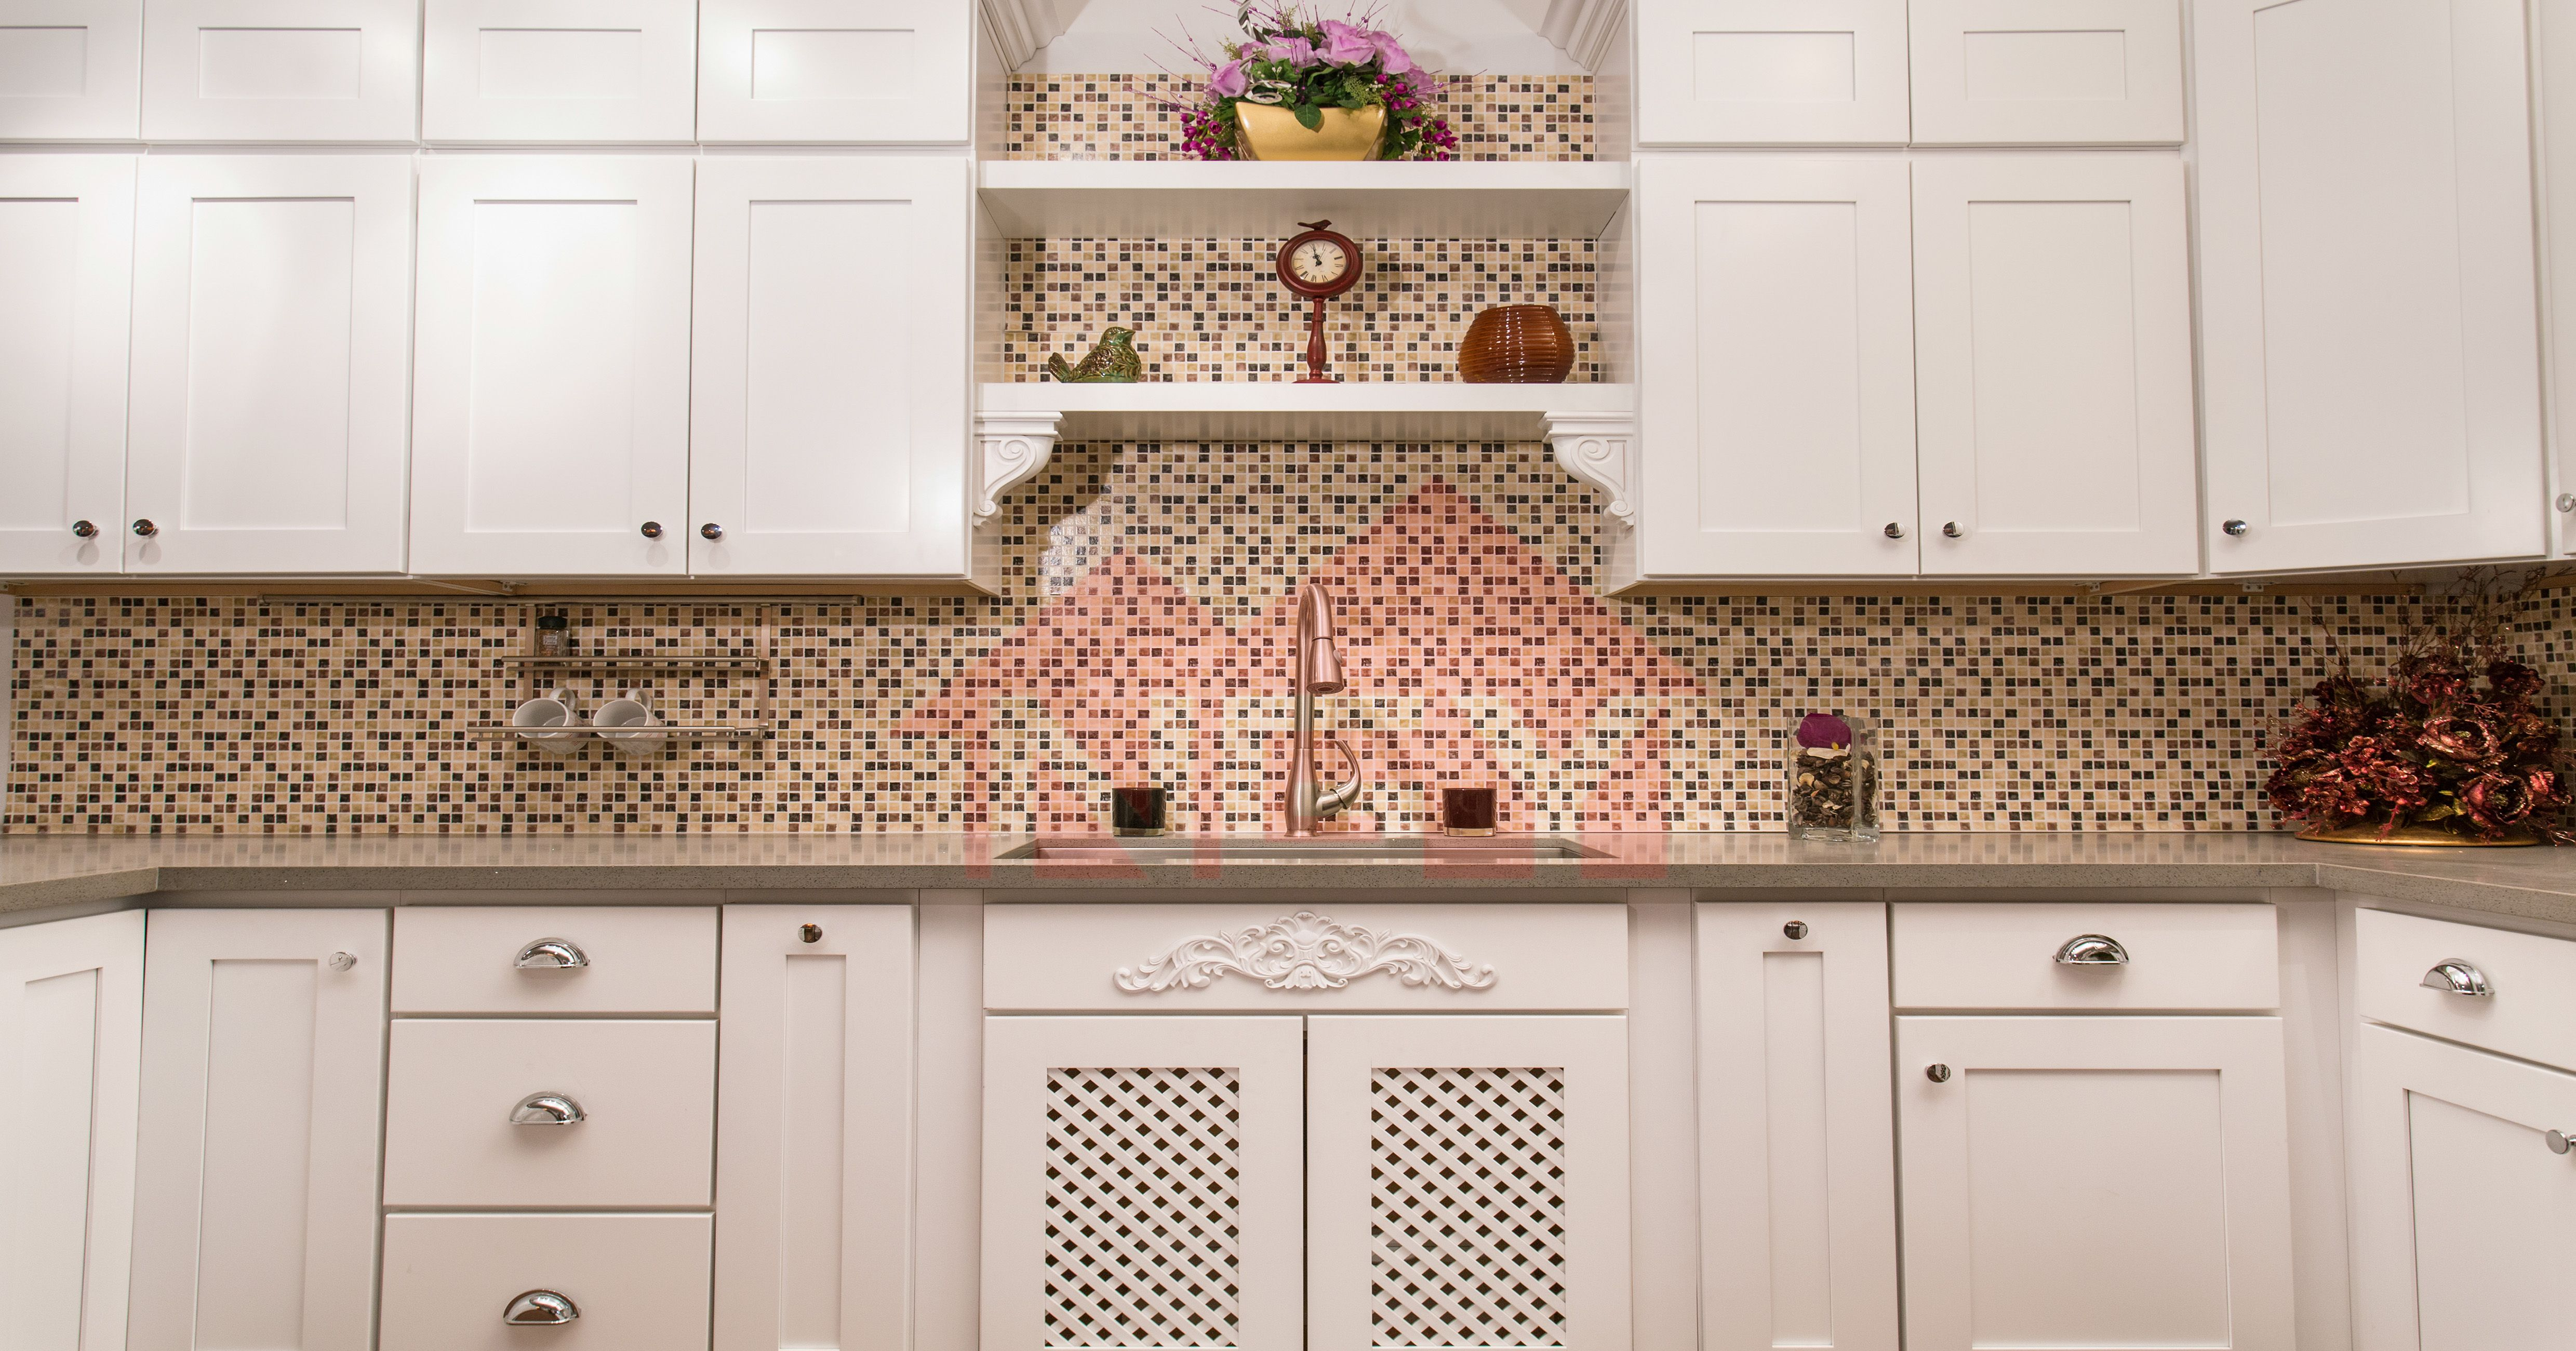 Ngy Stones Cabinets Inc All Products Kitchen Cabinets Framed Cabinets White Shaker Framed Cabinet Kitchen Cabinets Cabinet